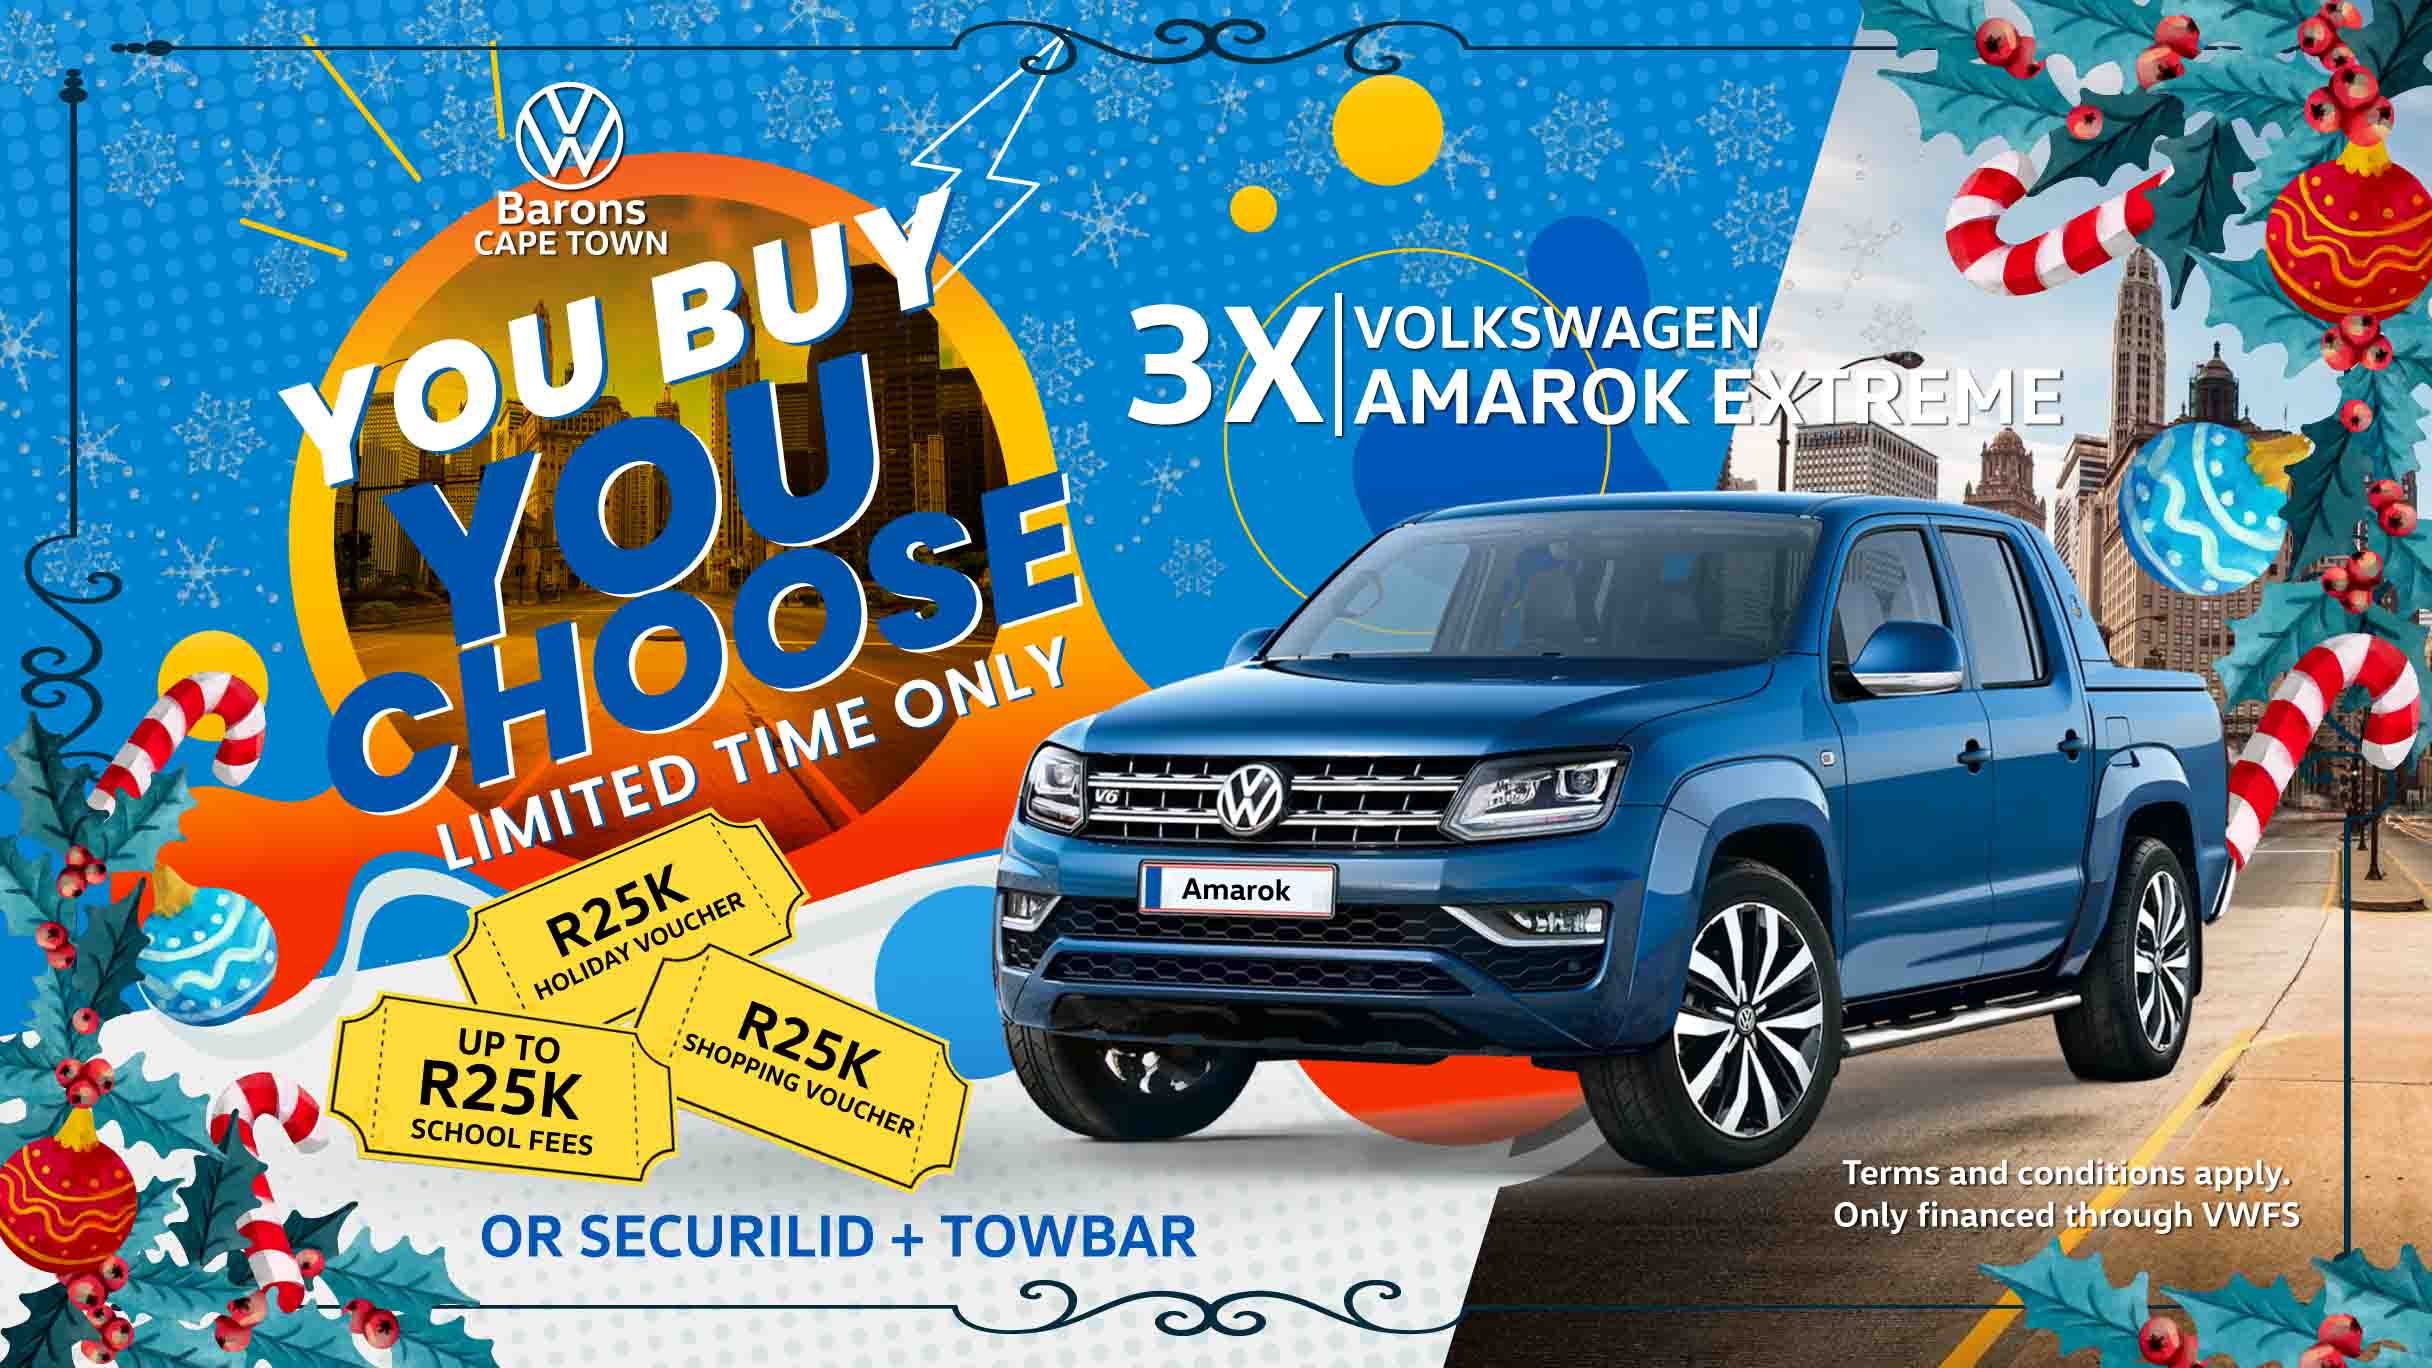 Festive offer on the Amarok at Barons Cape Town